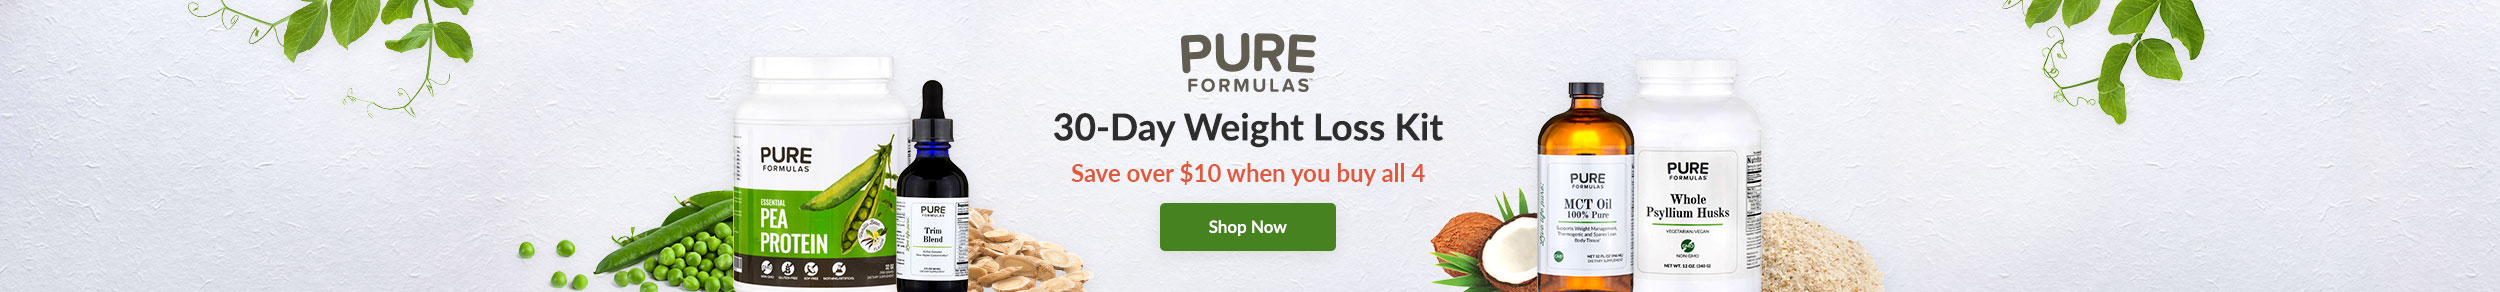 https://i3.pureformulas.net/images/static/Bundles_PureFormulas-30-Day-Weight-Loss-Kit_slide2_072018.jpg